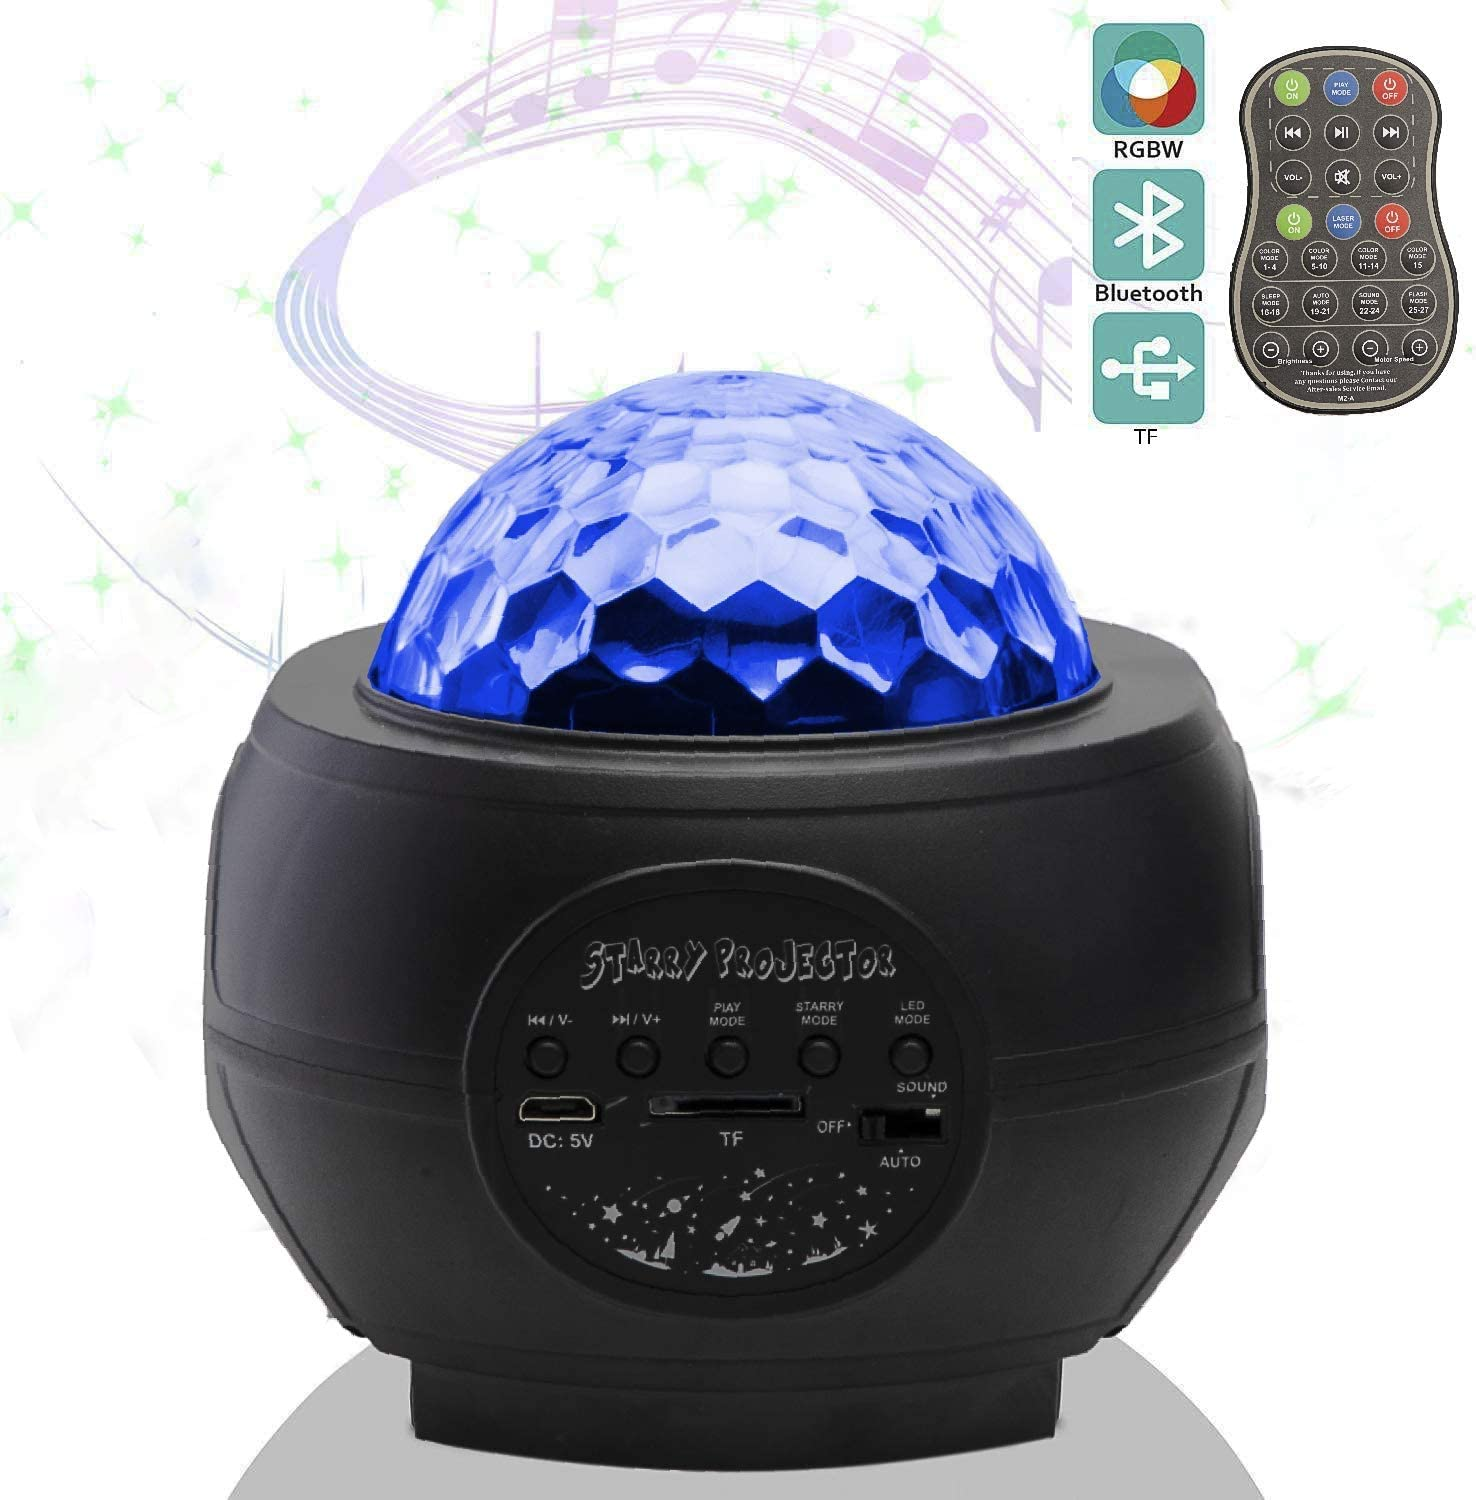 amazon com jd star projector night light led star ocean wave night light with built in music speaker remote controller for bedroom decoration kids party dance floor ceiling garden outdoor amazon com